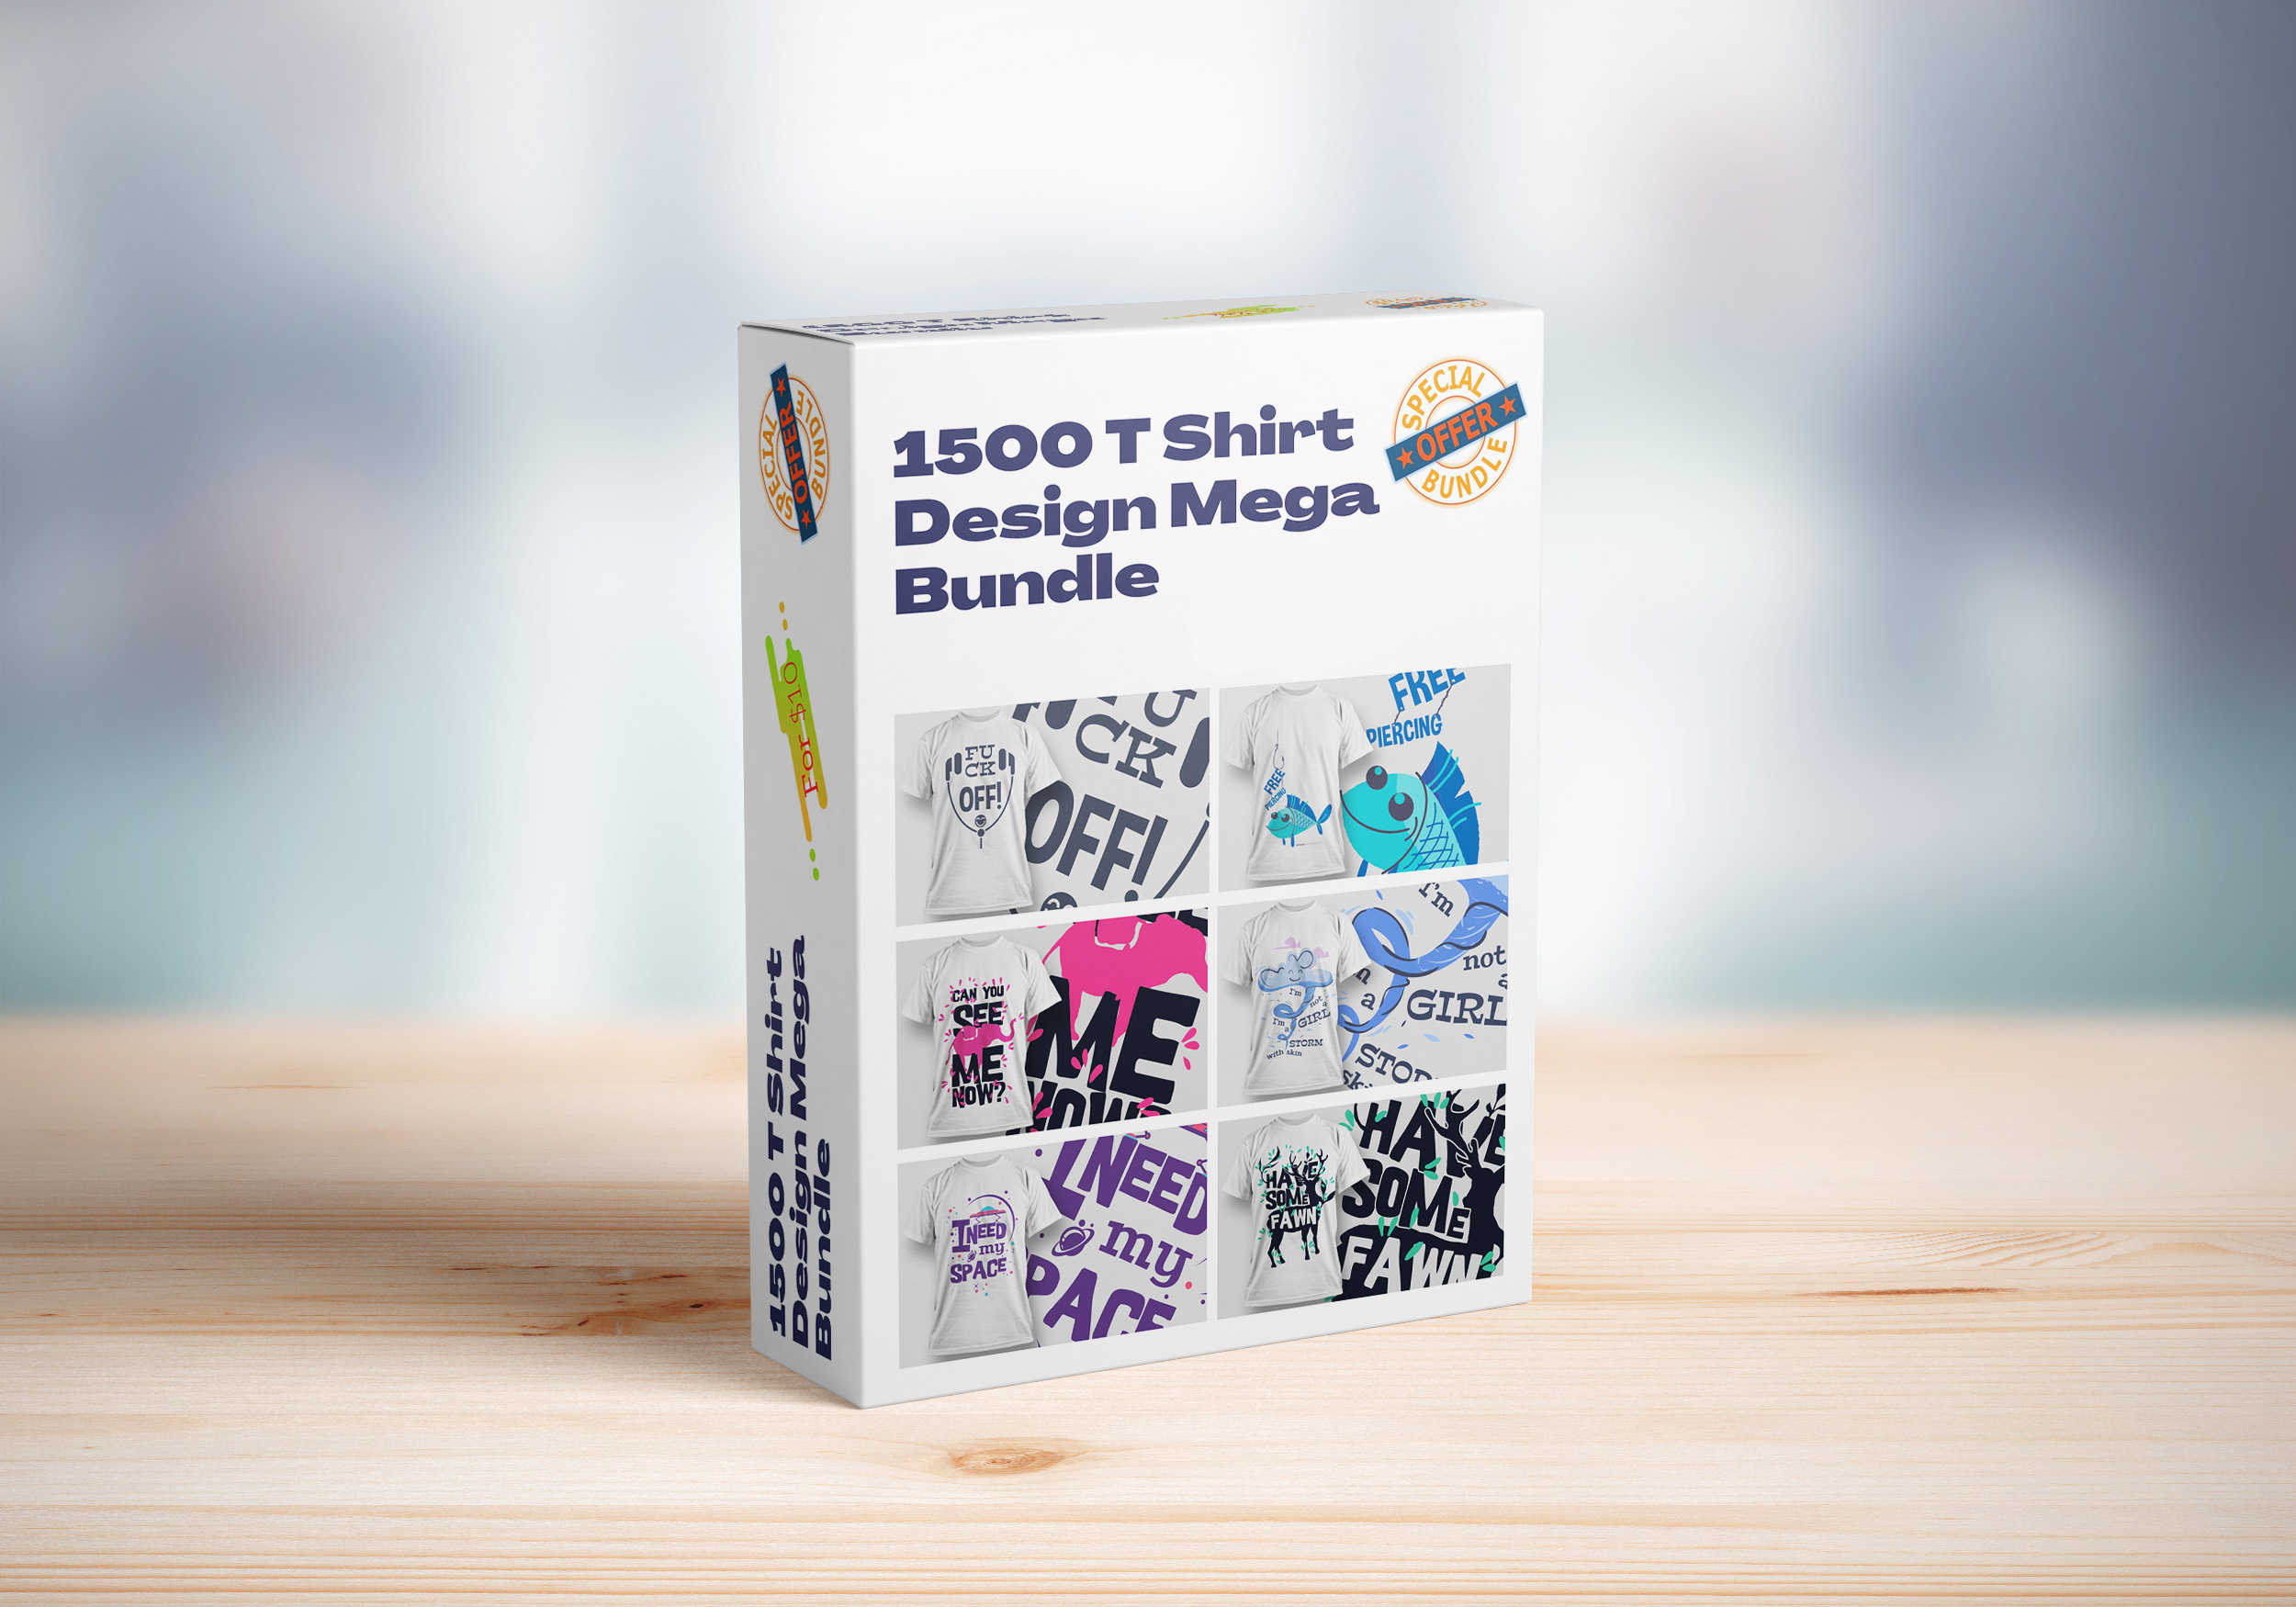 1500 T Shirt Design Mega Bundle